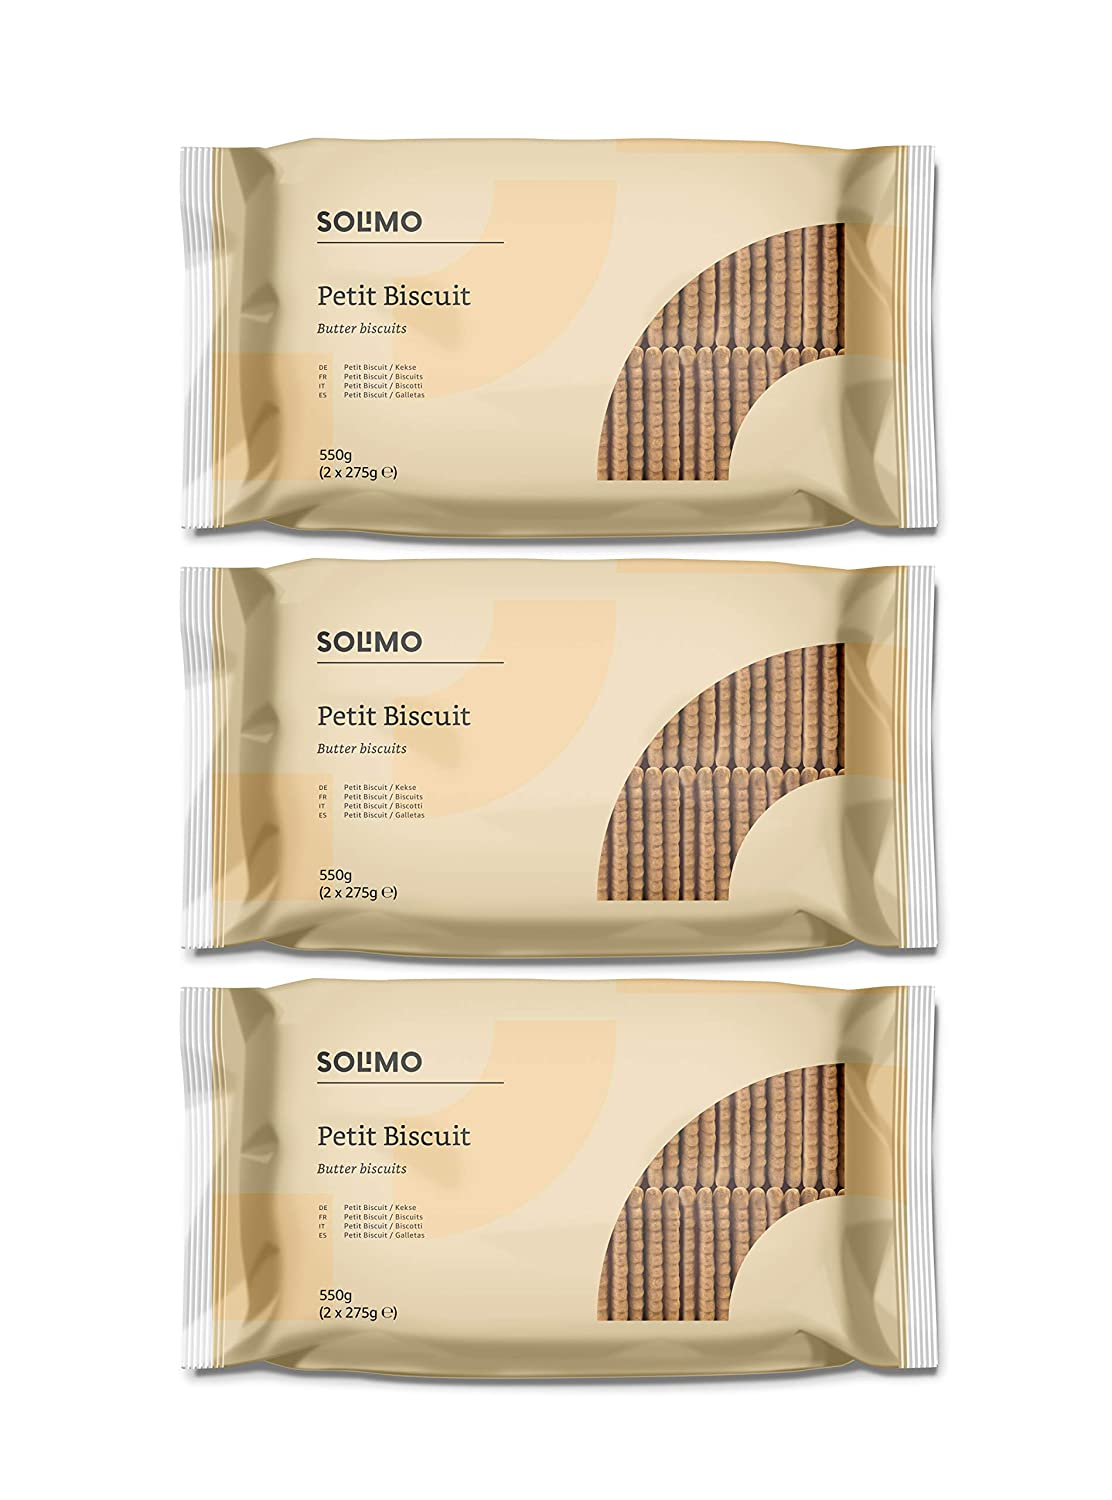 Marca Amazon- Solimo - Galletas Petit Biscuits - 3 packs de 550g: Amazon.es: Alimentación y bebidas